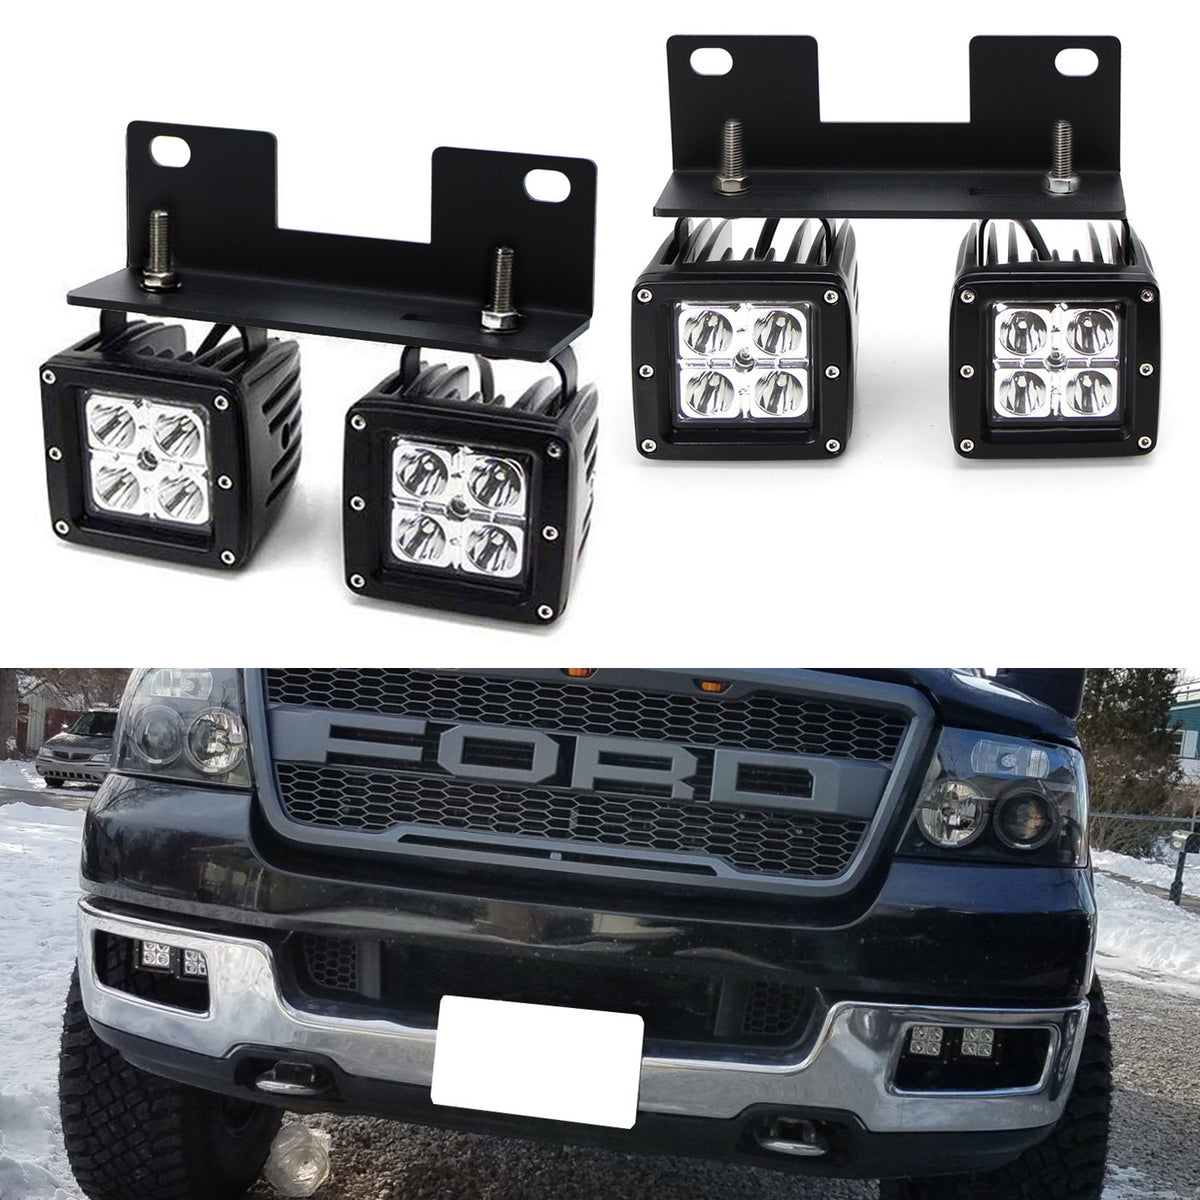 Dual Led Pod Light Fog Lamp Kit For 2004 06 Ford F150 06 Lincoln Mark Lt 4 20w Cree Led Cubes Foglight Location Mounting Brackets Wiring